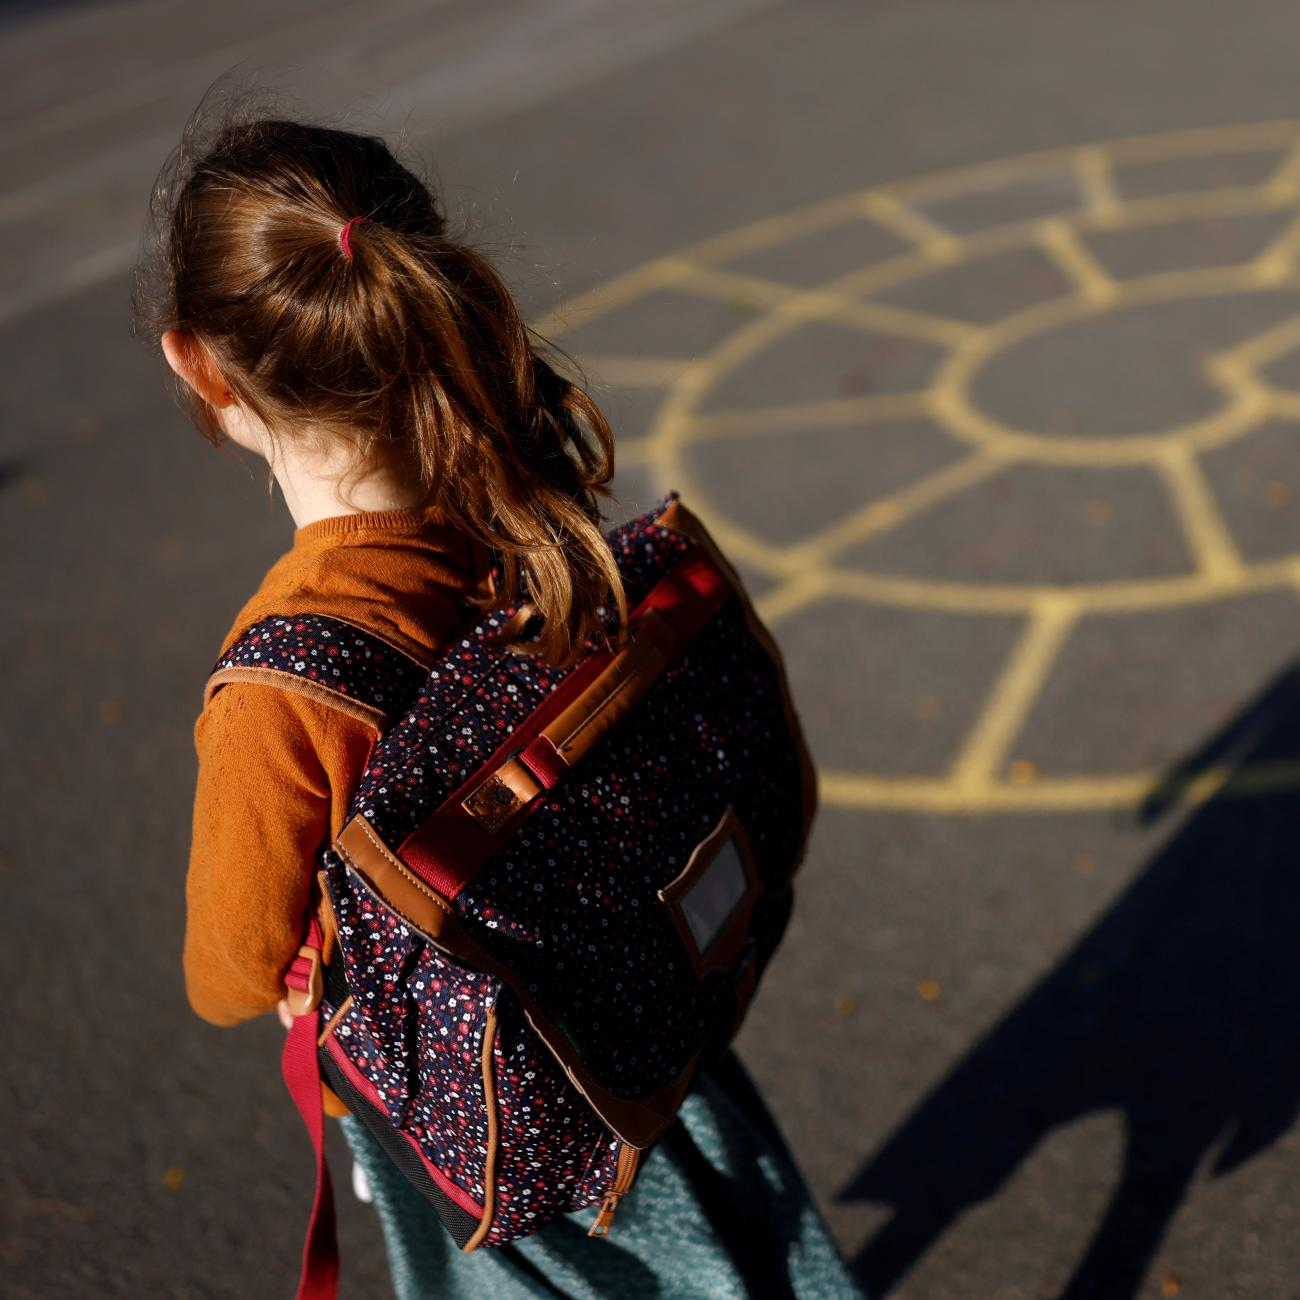 A child arrives at a primary school on the first day of the new school year after summer break in Vertou, France, on September 2, 2021.